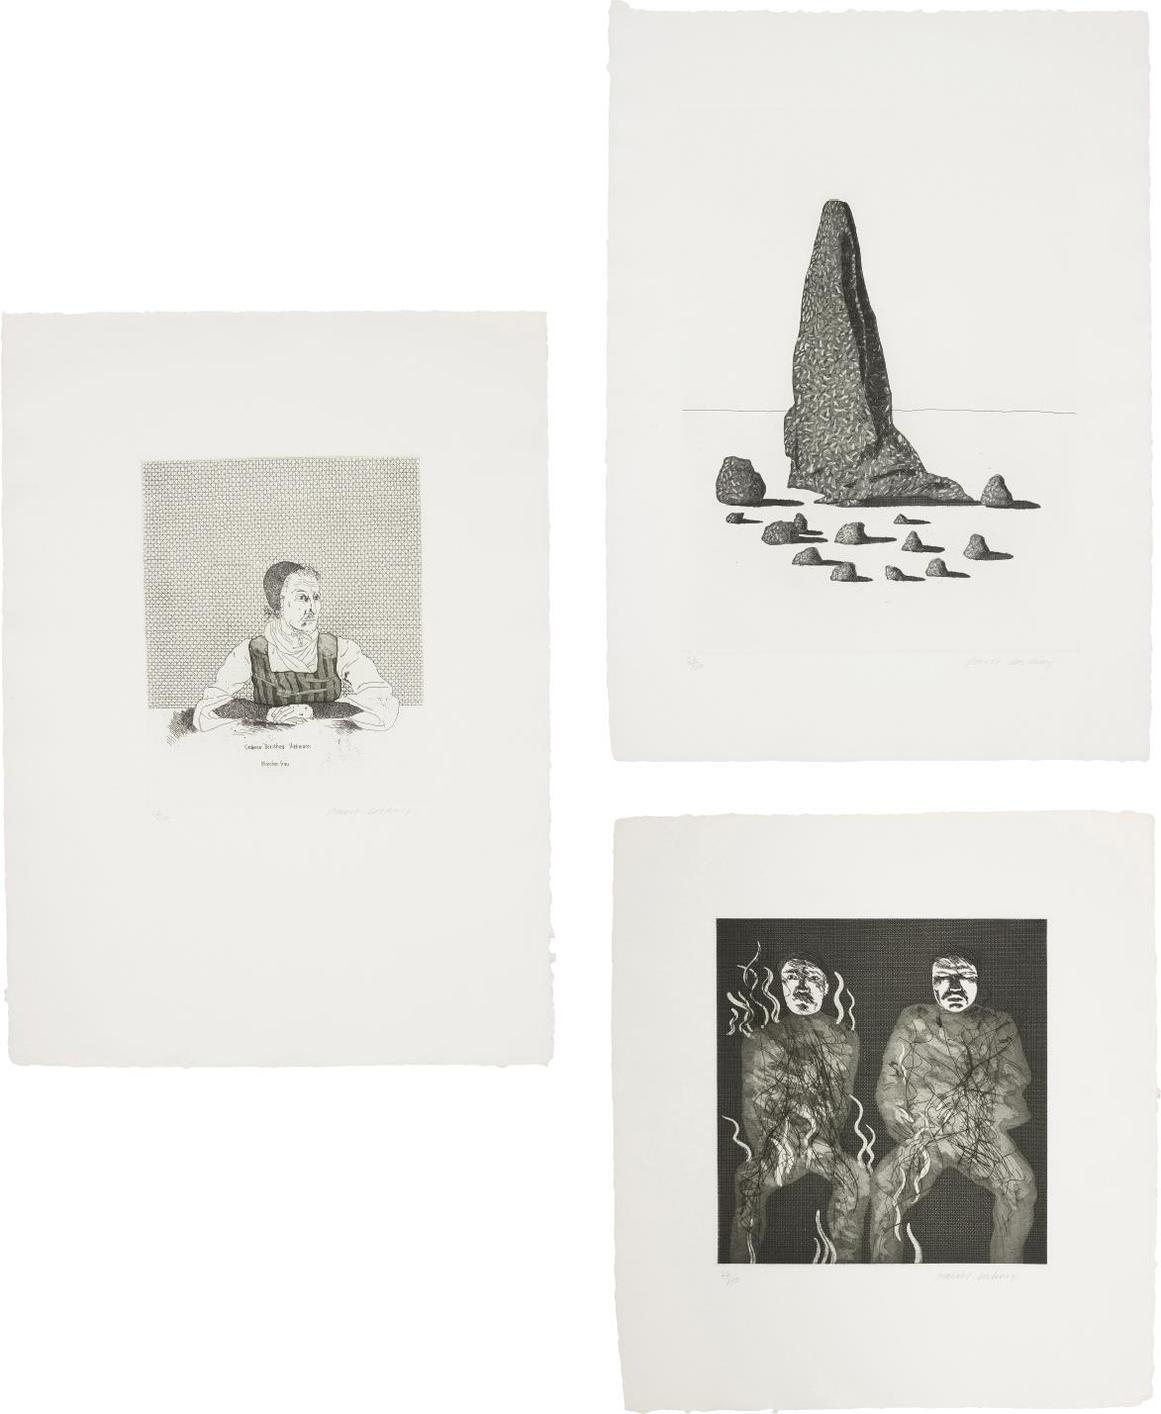 David Hockney-Catharina Dorothea Viehman; The Sexton Disguised As A Ghost Stood Still As Stone; And Corpses On Fire, Plates 1, 21 And 22 From Illustrations For Six Fairy Tales From The Brothers Grimm-1969